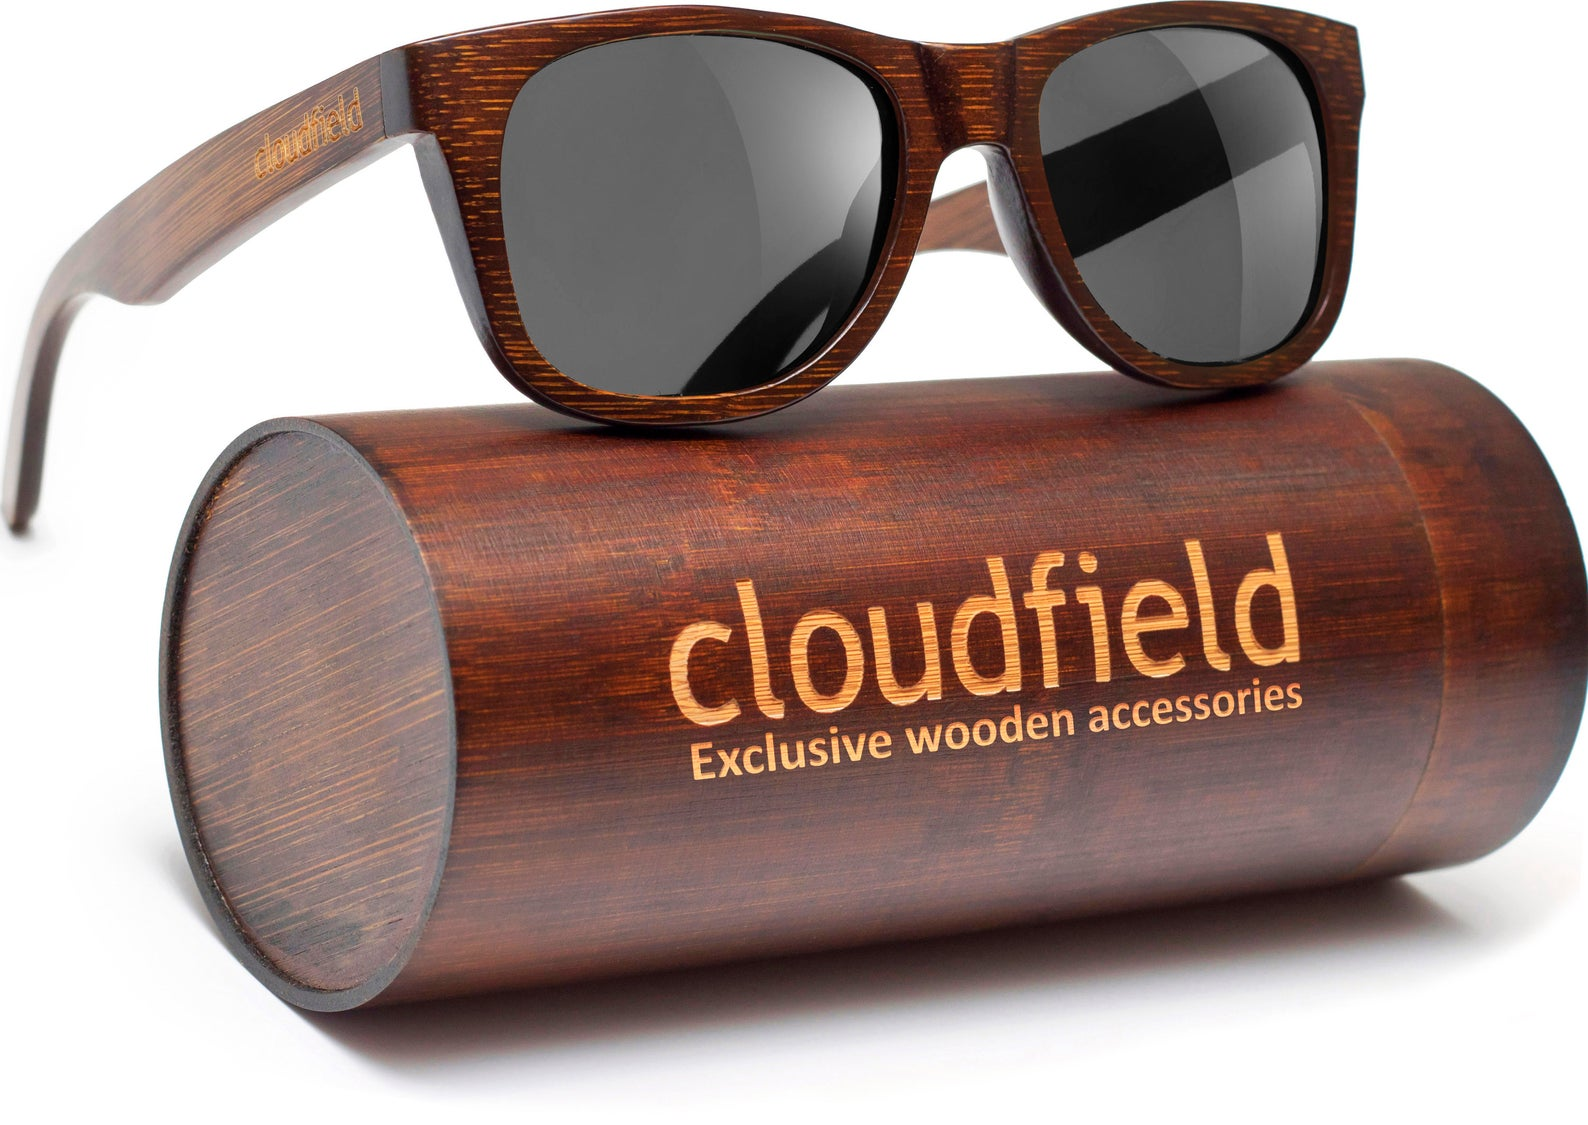 Bamboo Sunglasses from Cloudfield